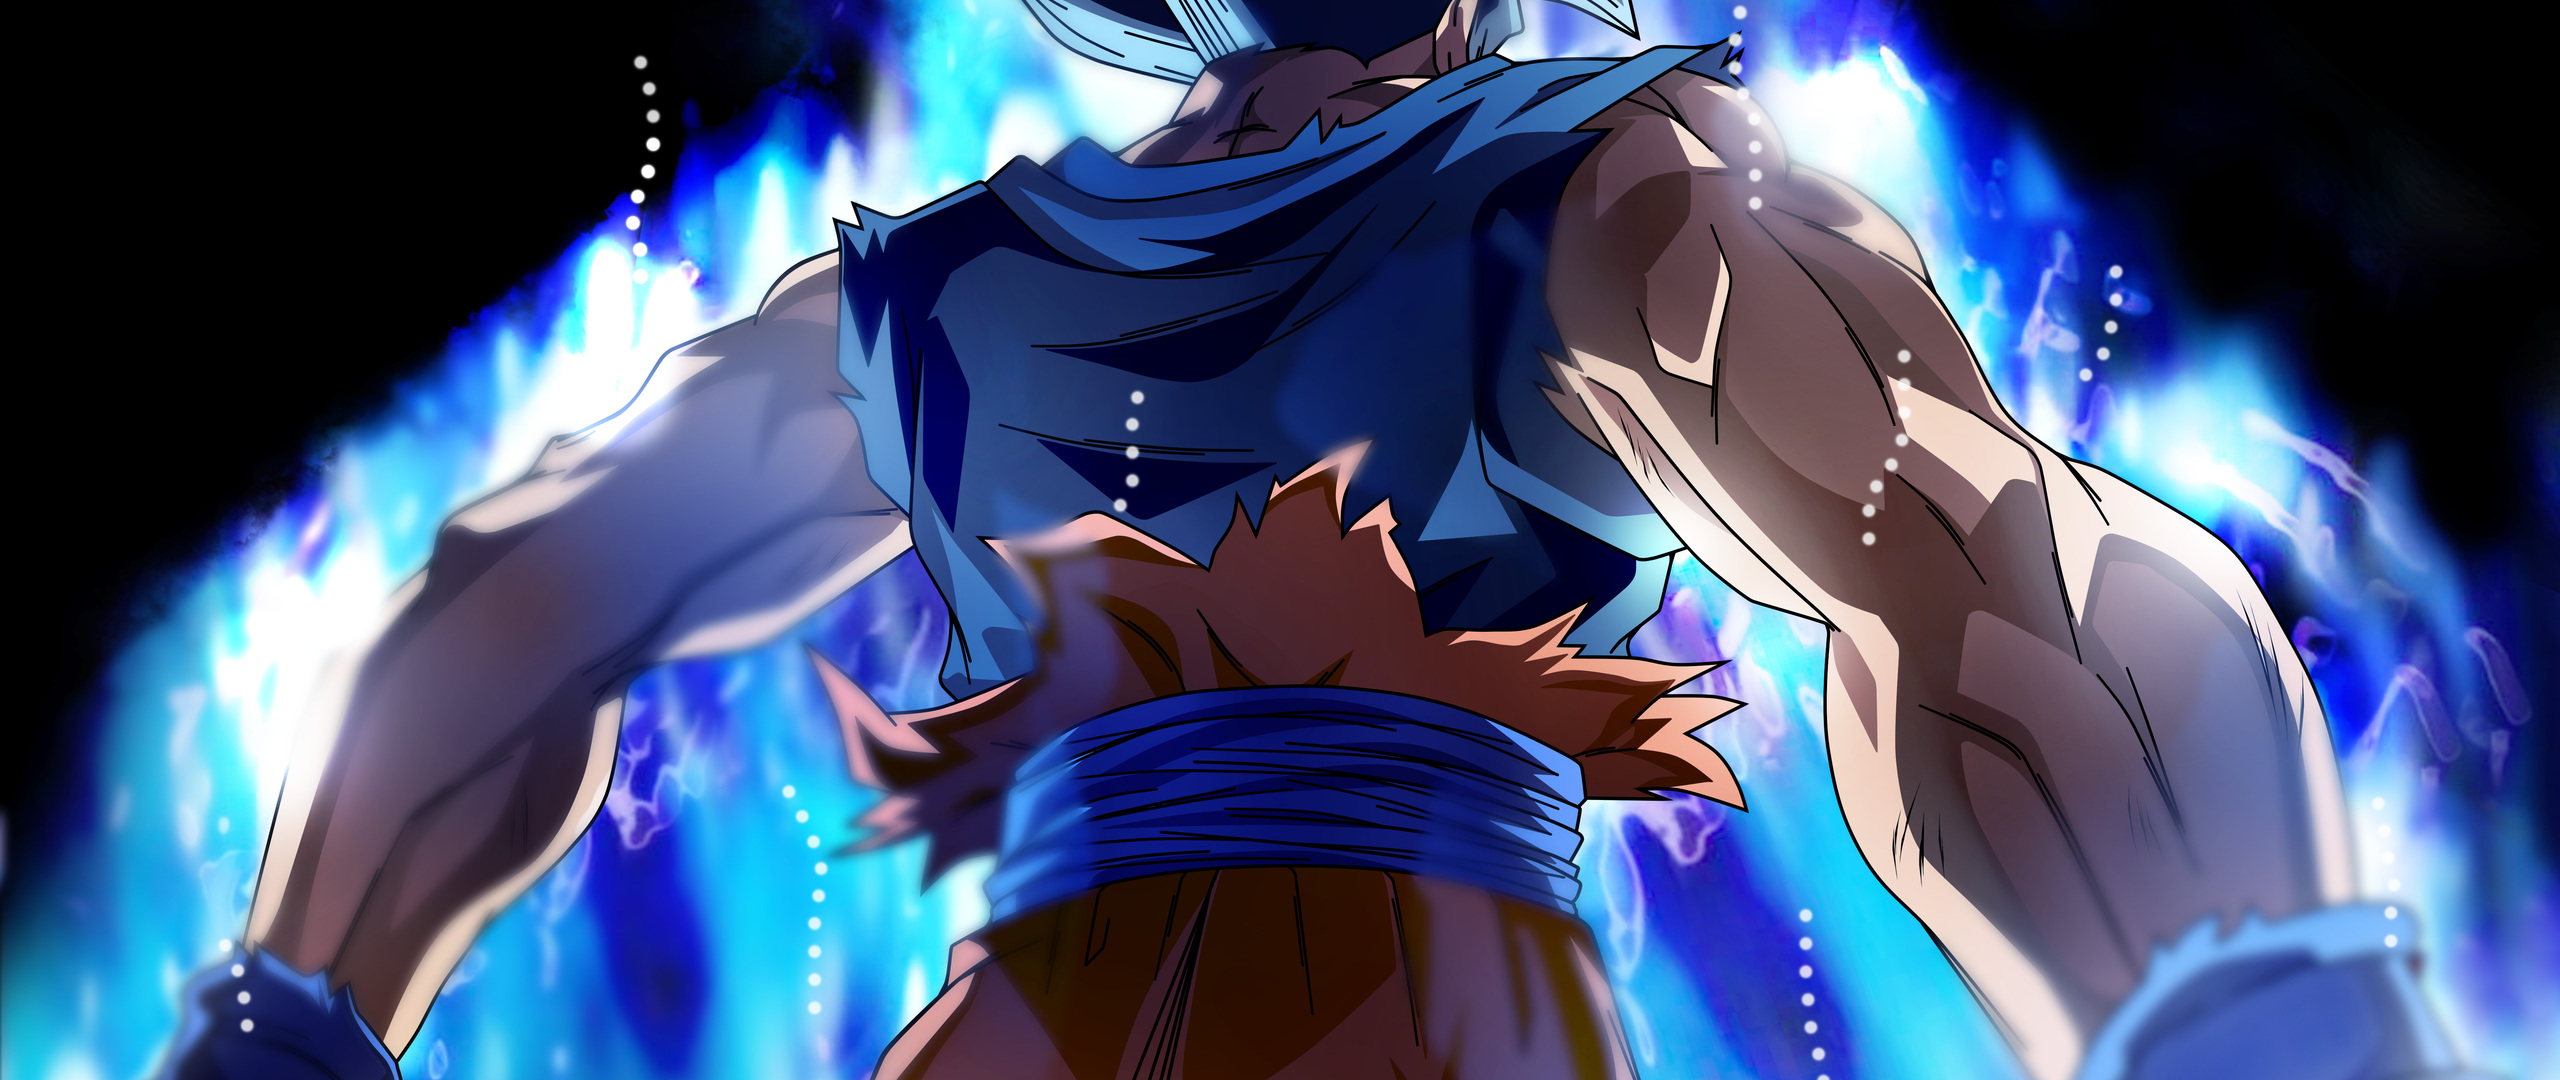 2560x1080 goku dragon ball super 5k anime 2560x1080 for Fondo de pantalla 4k anime